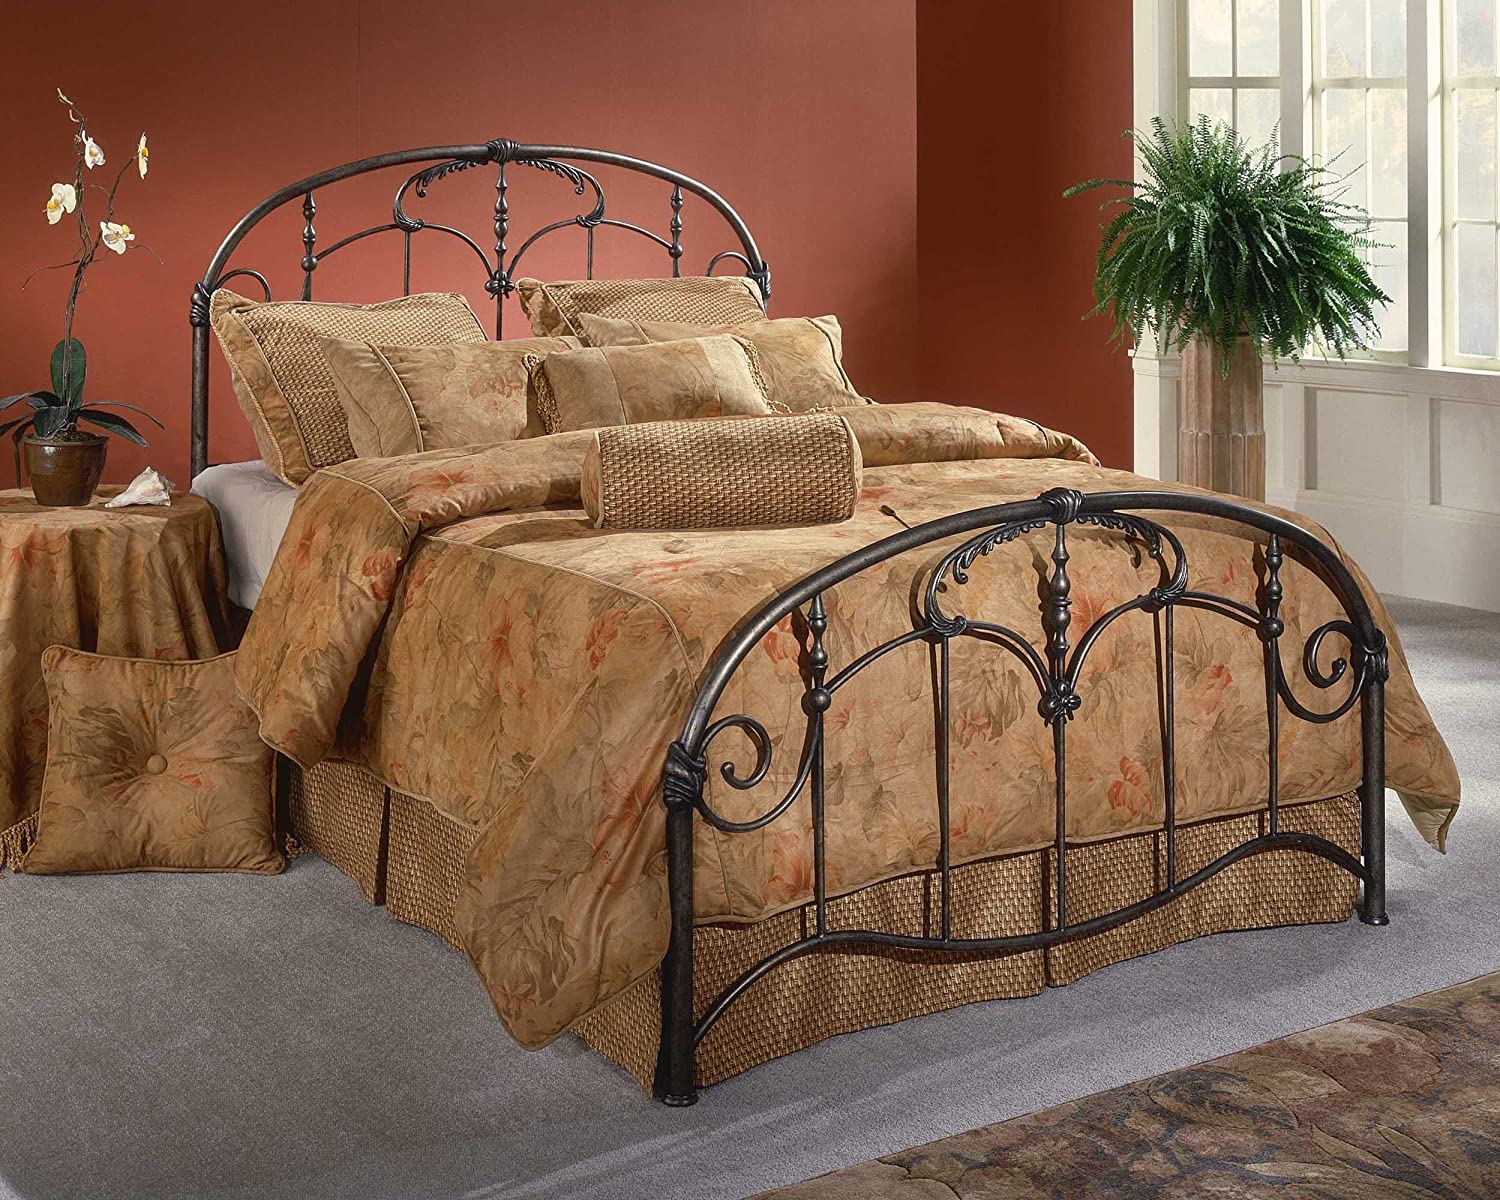 Lovely Amazon.com: Hillsdale Furniture 1293BQR Jacqueline Bed Set With Rails, Queen,  Old Brushed Pewter: Kitchen U0026 Dining